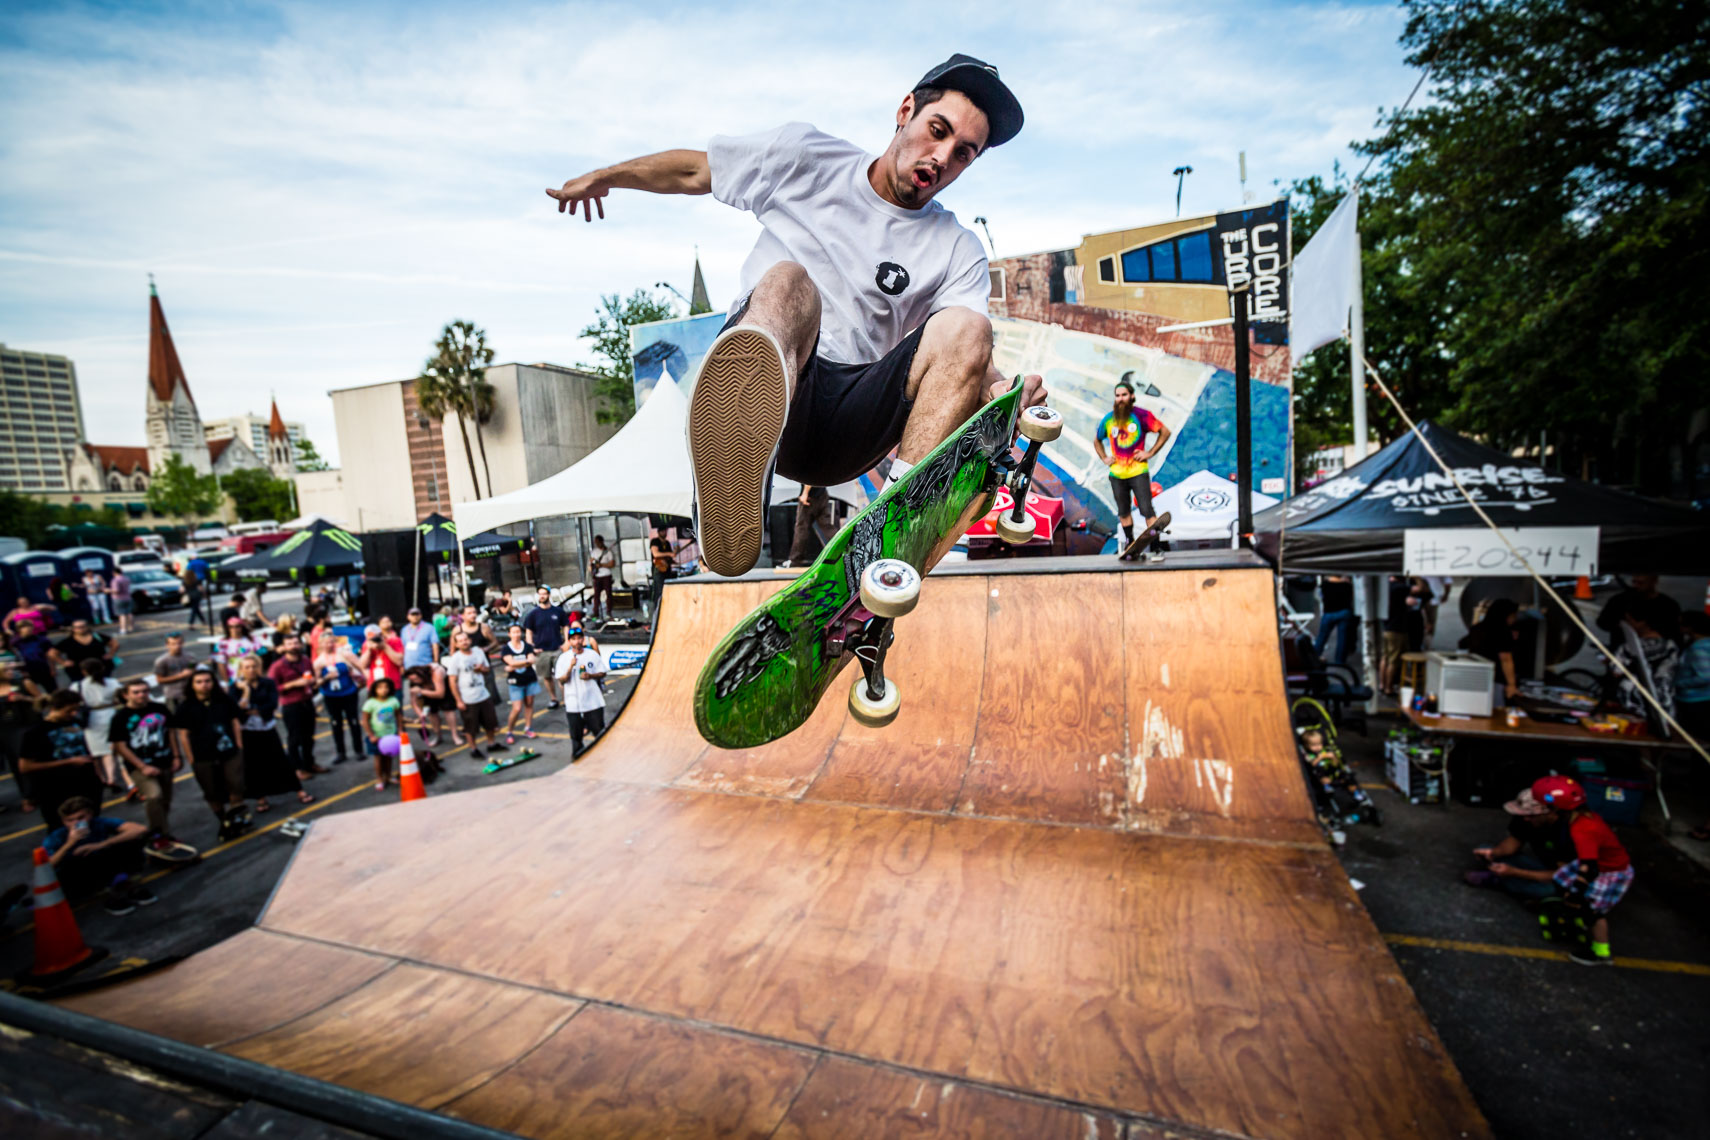 Lifestyle Skate Photography